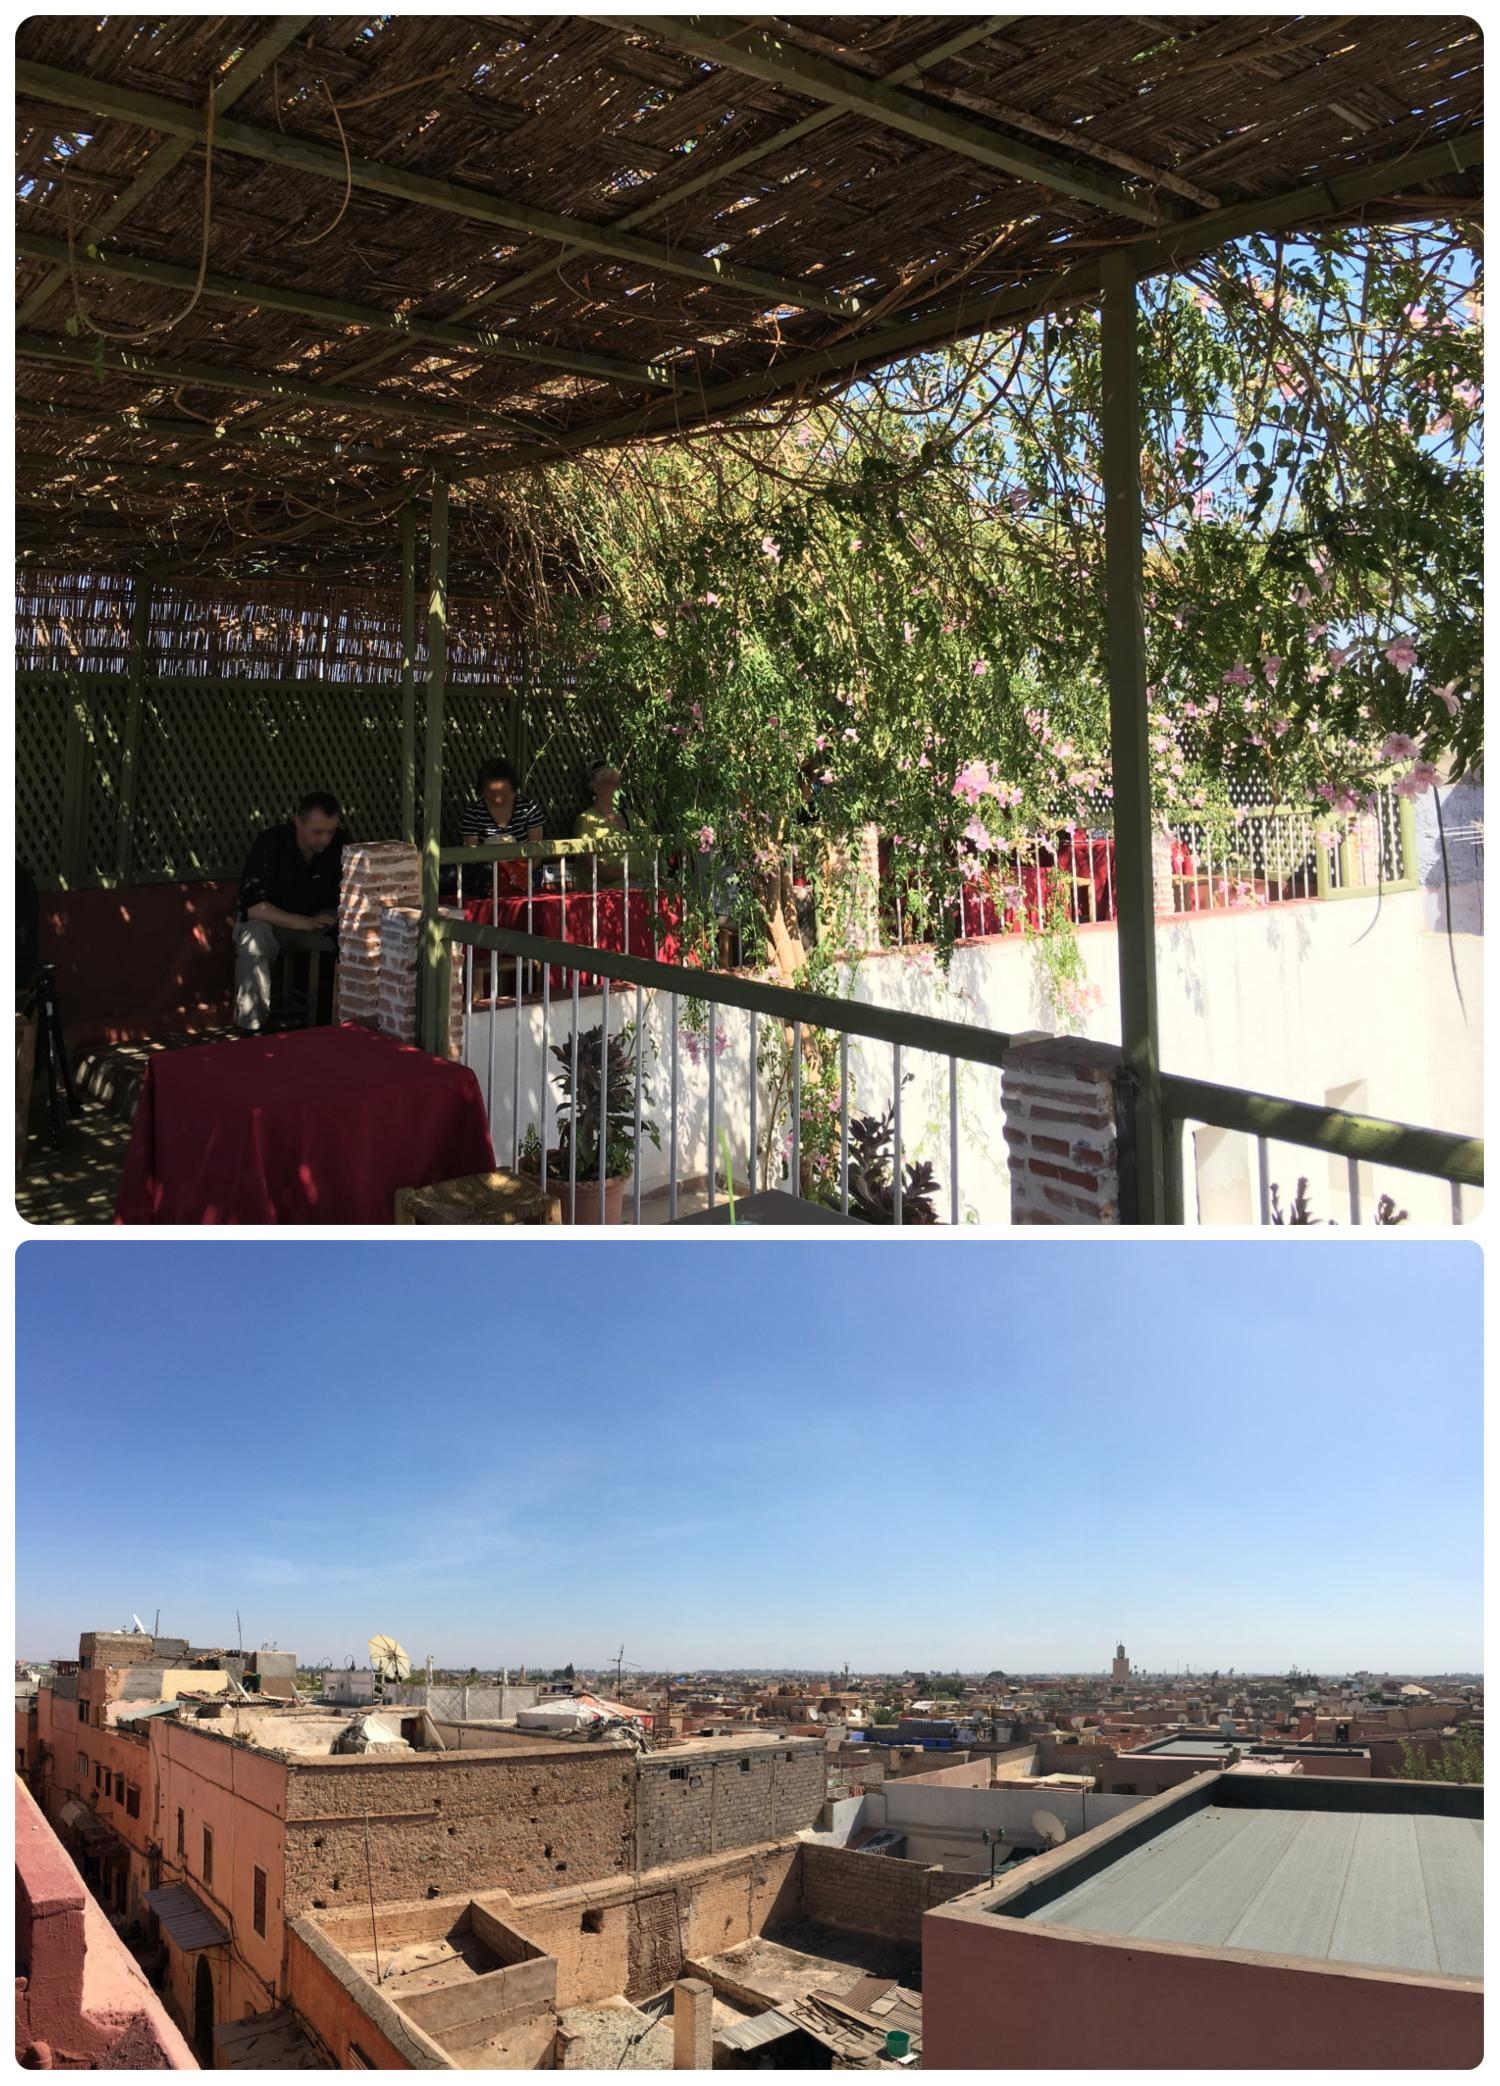 The cafe and rooftop terrace with city views at the Museum of Photography - House of Photography in Marrakech, Morocco.